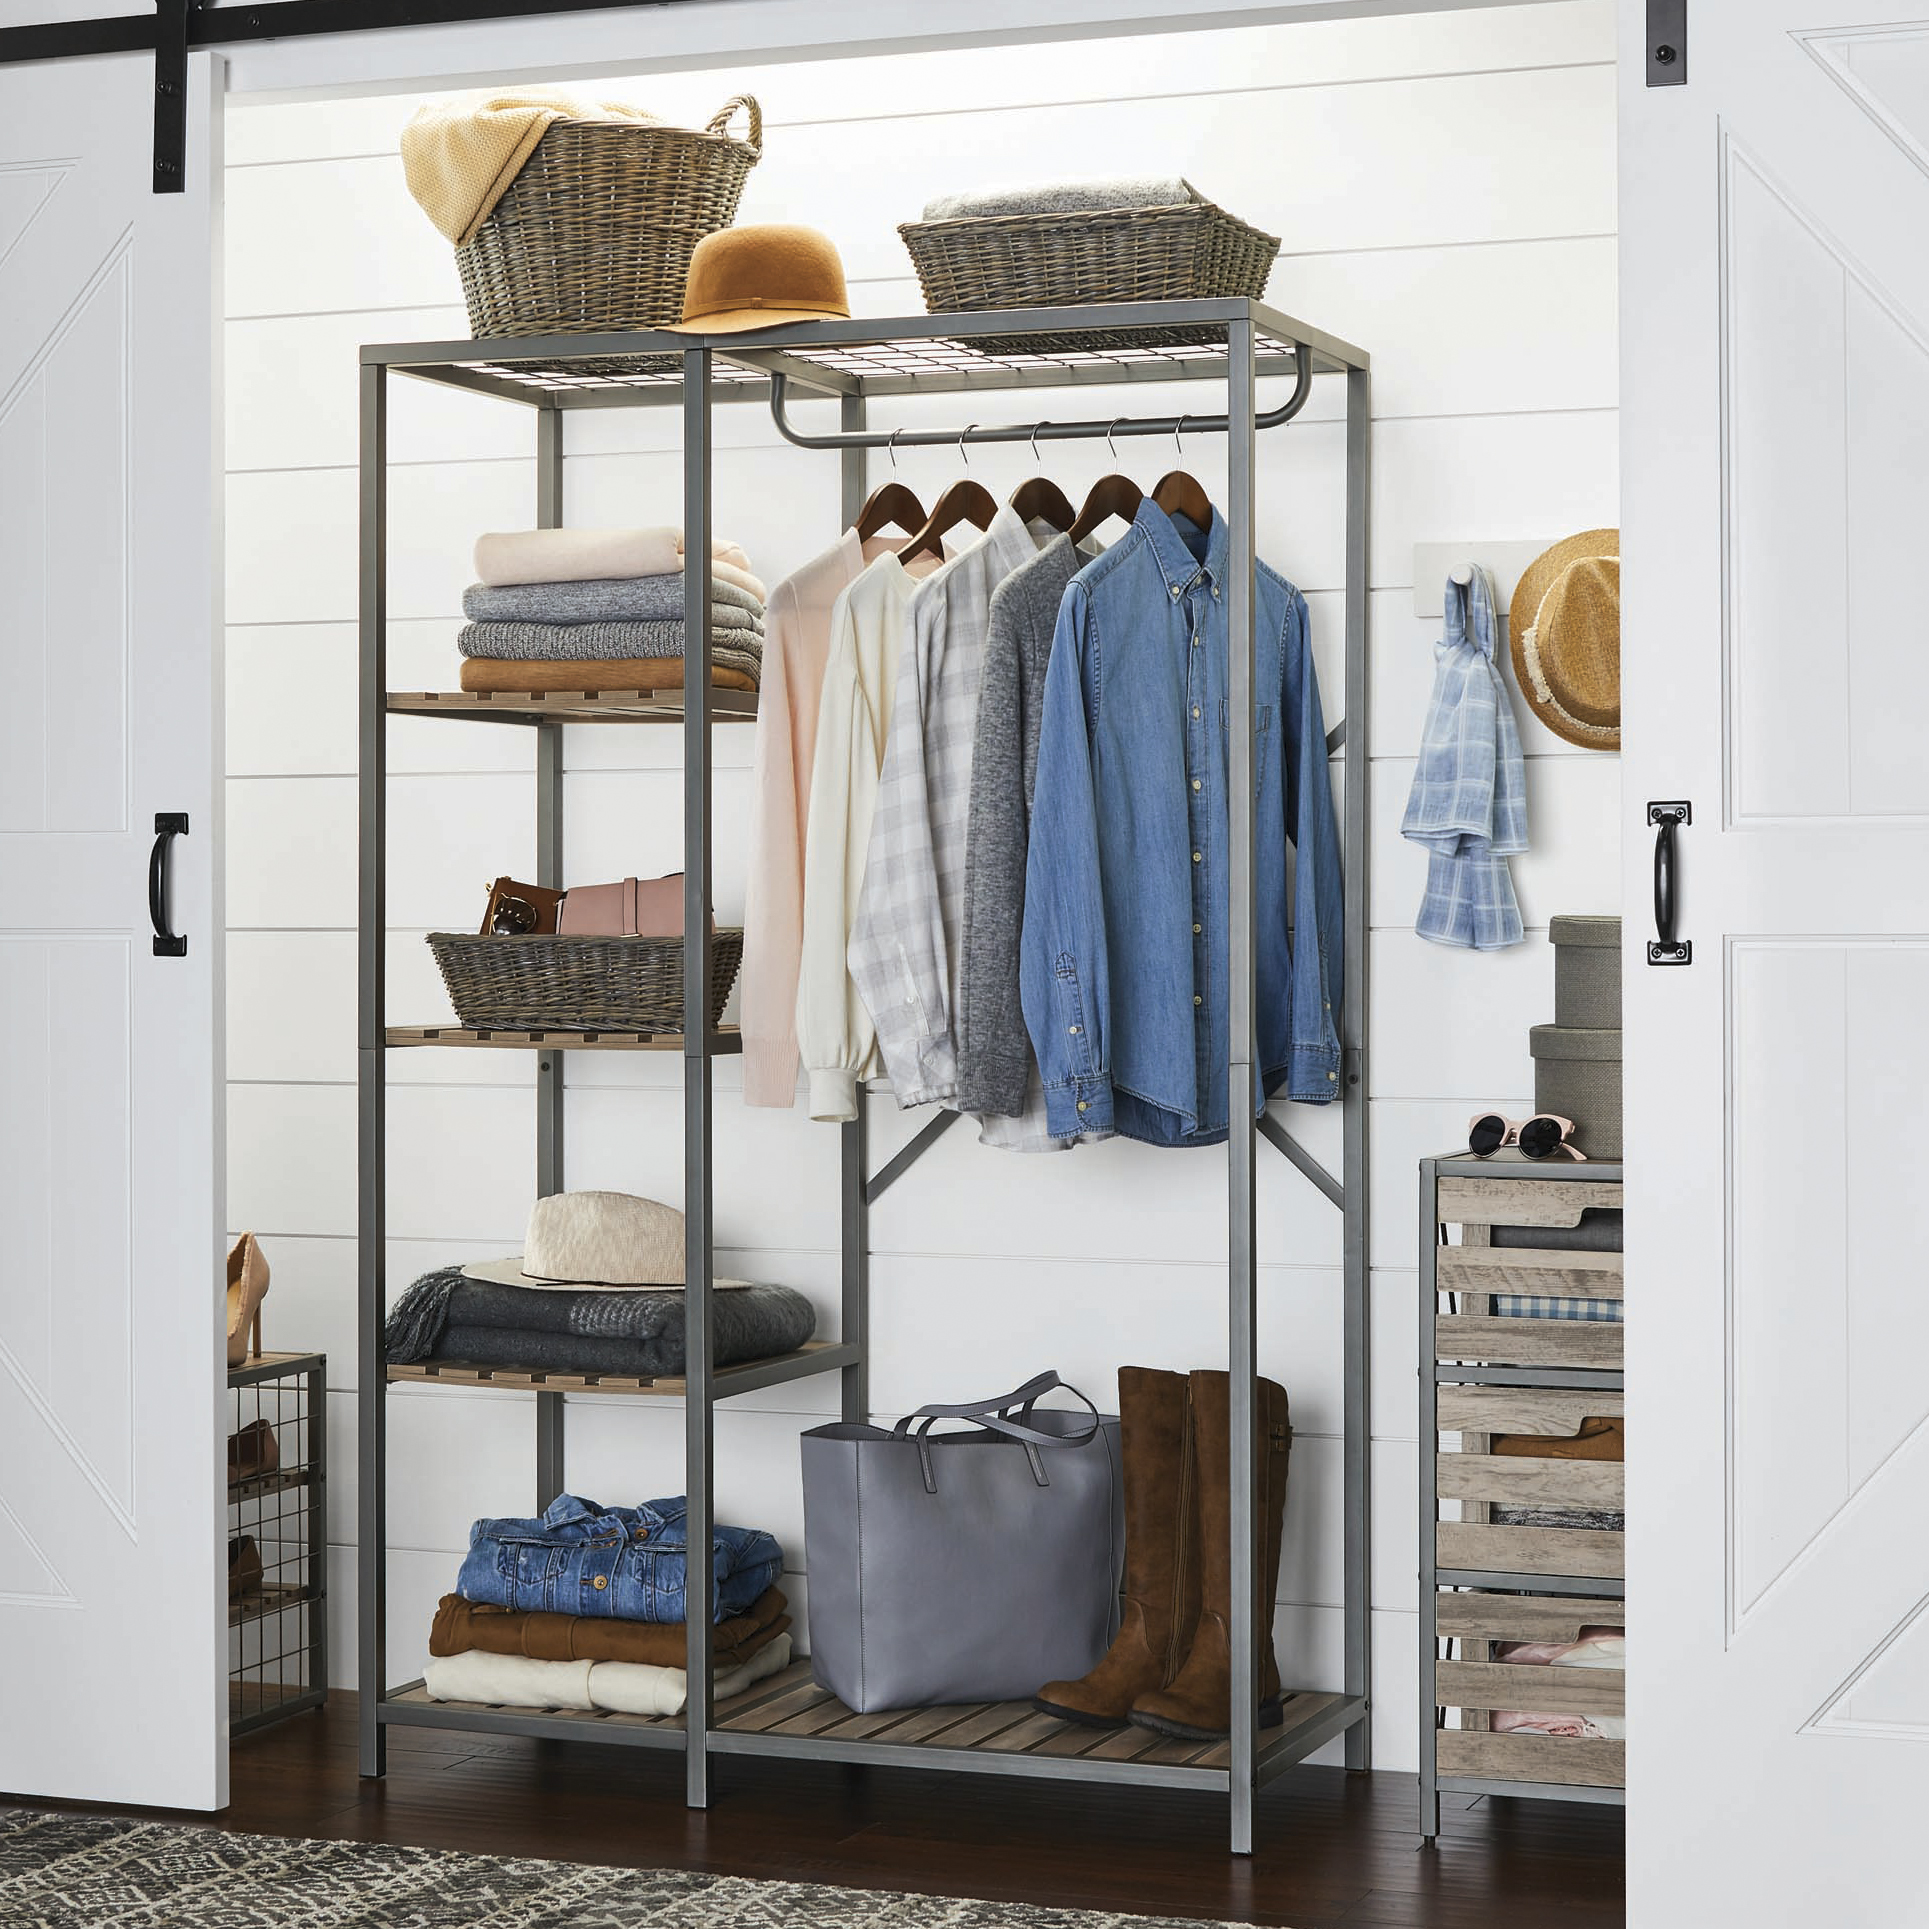 Better Homes & Gardens Decorative Gunmetal Grey Wood and Metal Garment Rack with Slatted Wood tubing